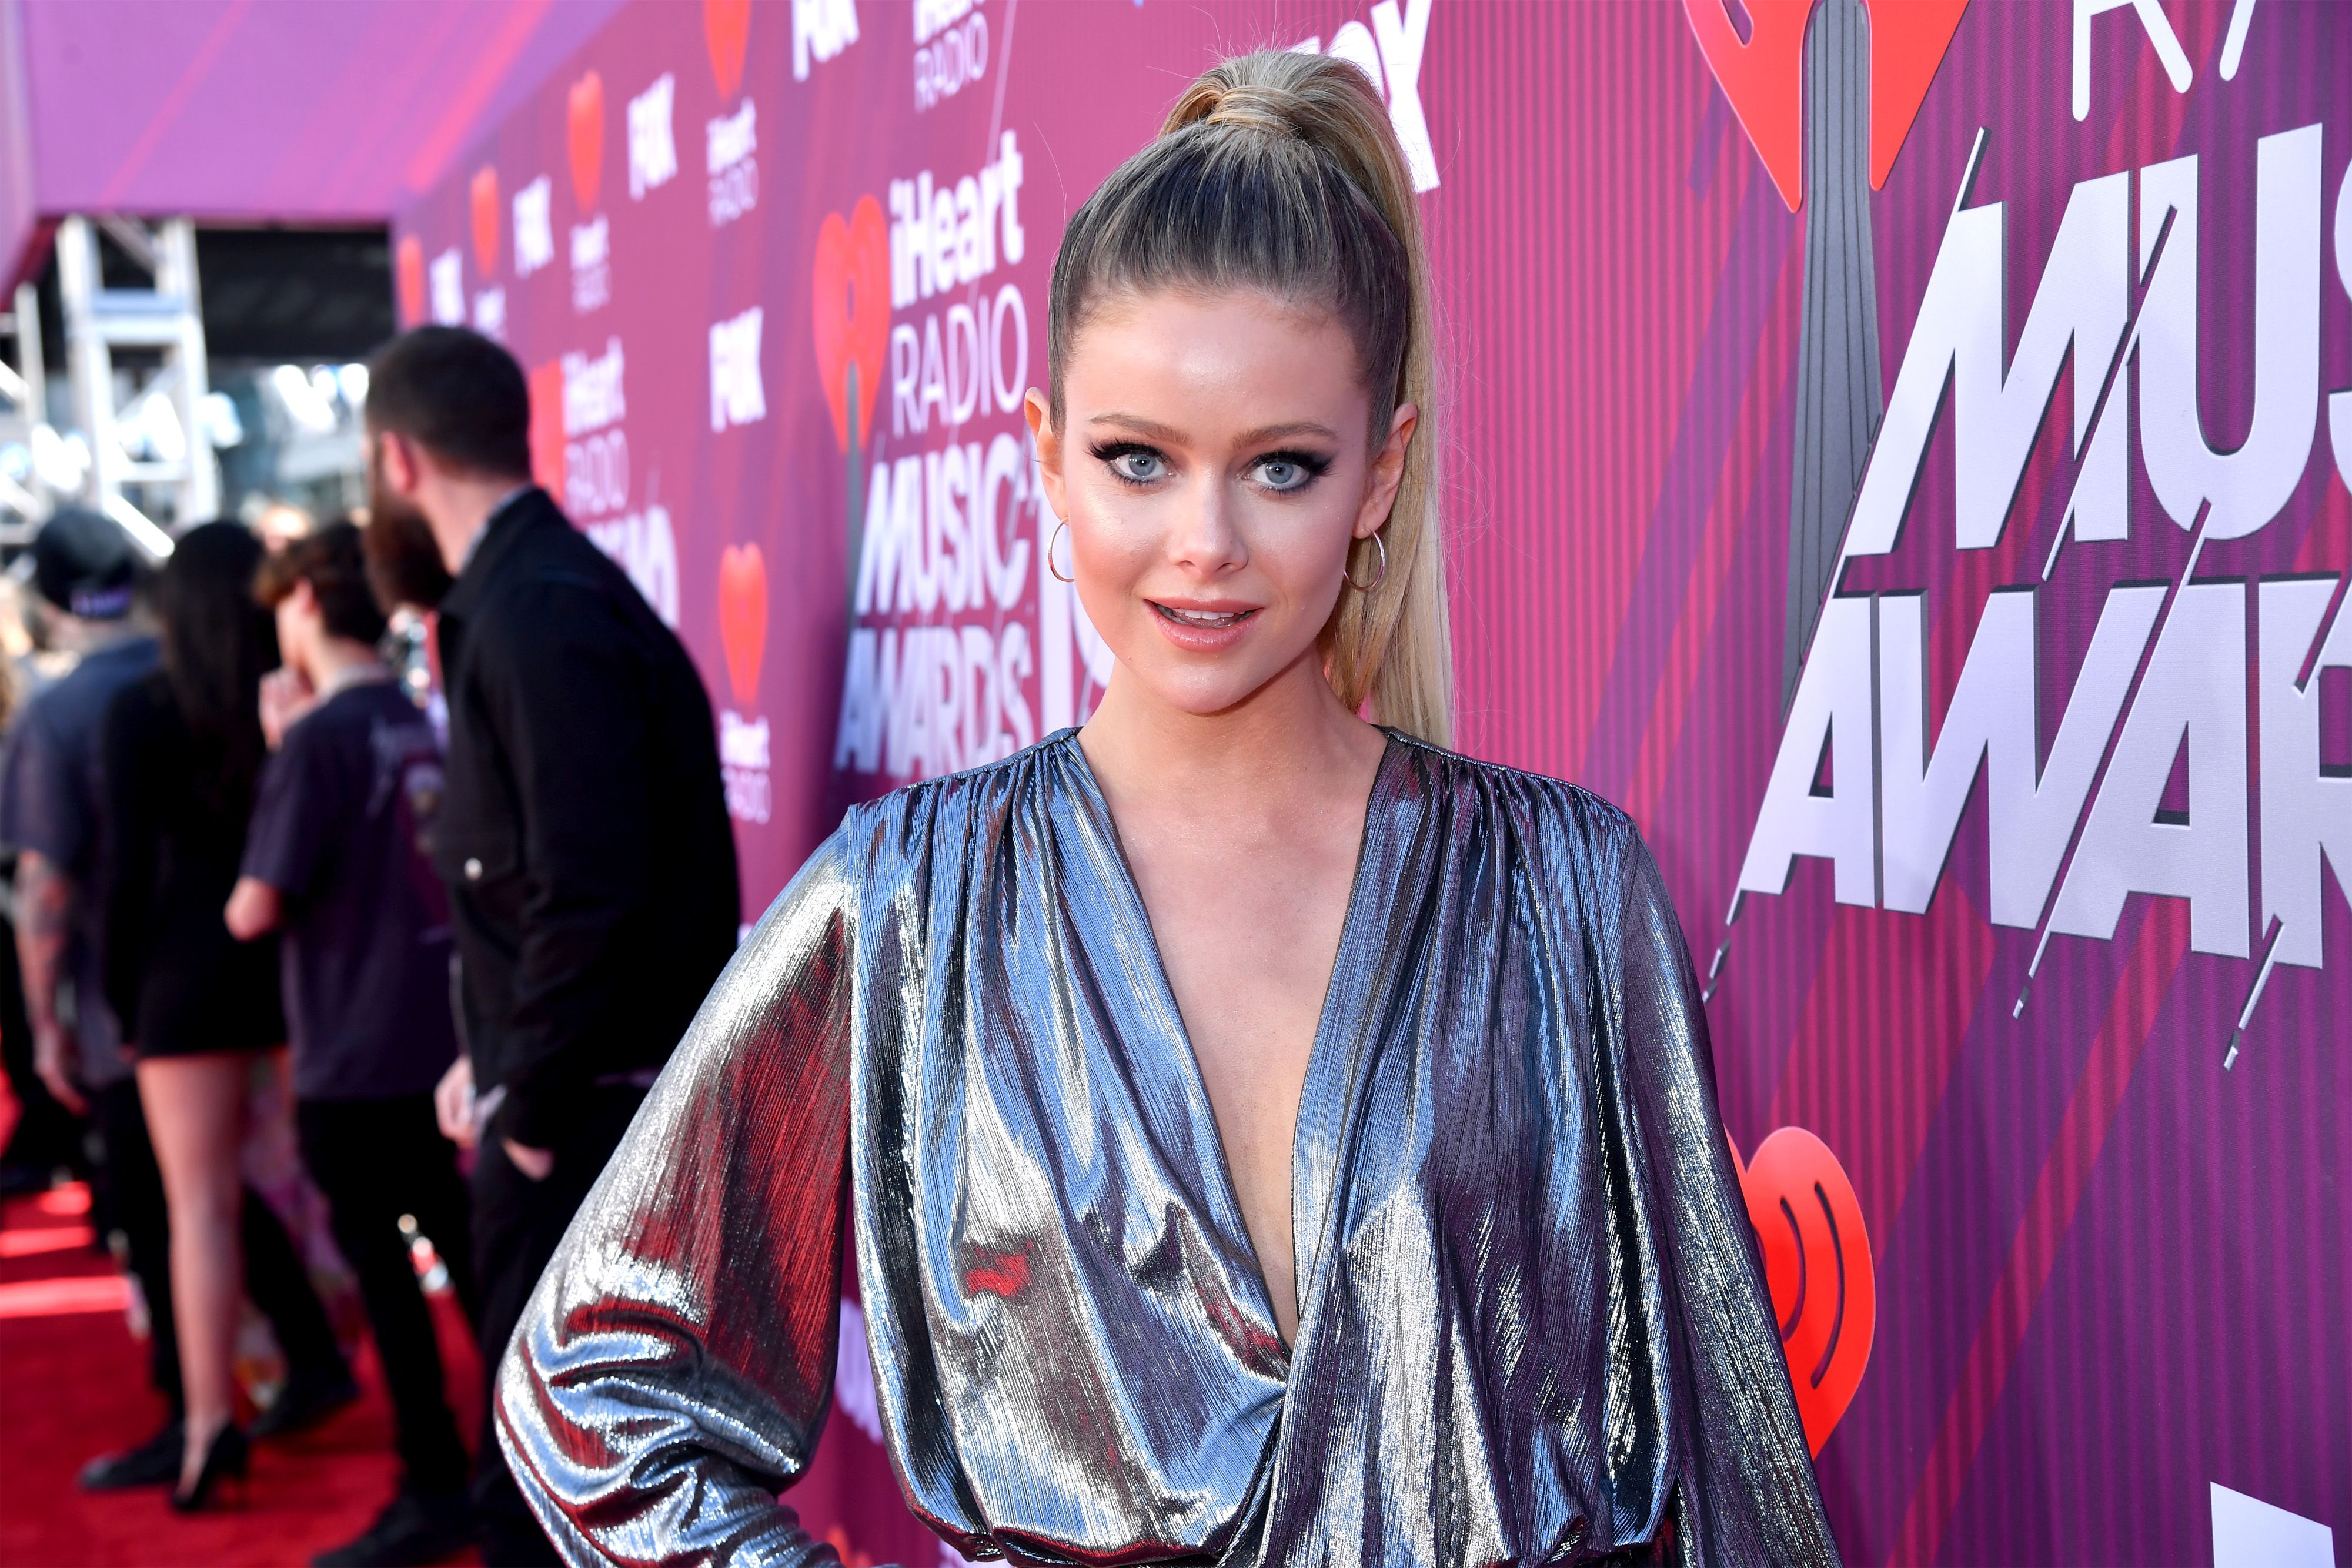 Hannah Godwin on the red carpet of an event looking spectacular in a sliver dress.